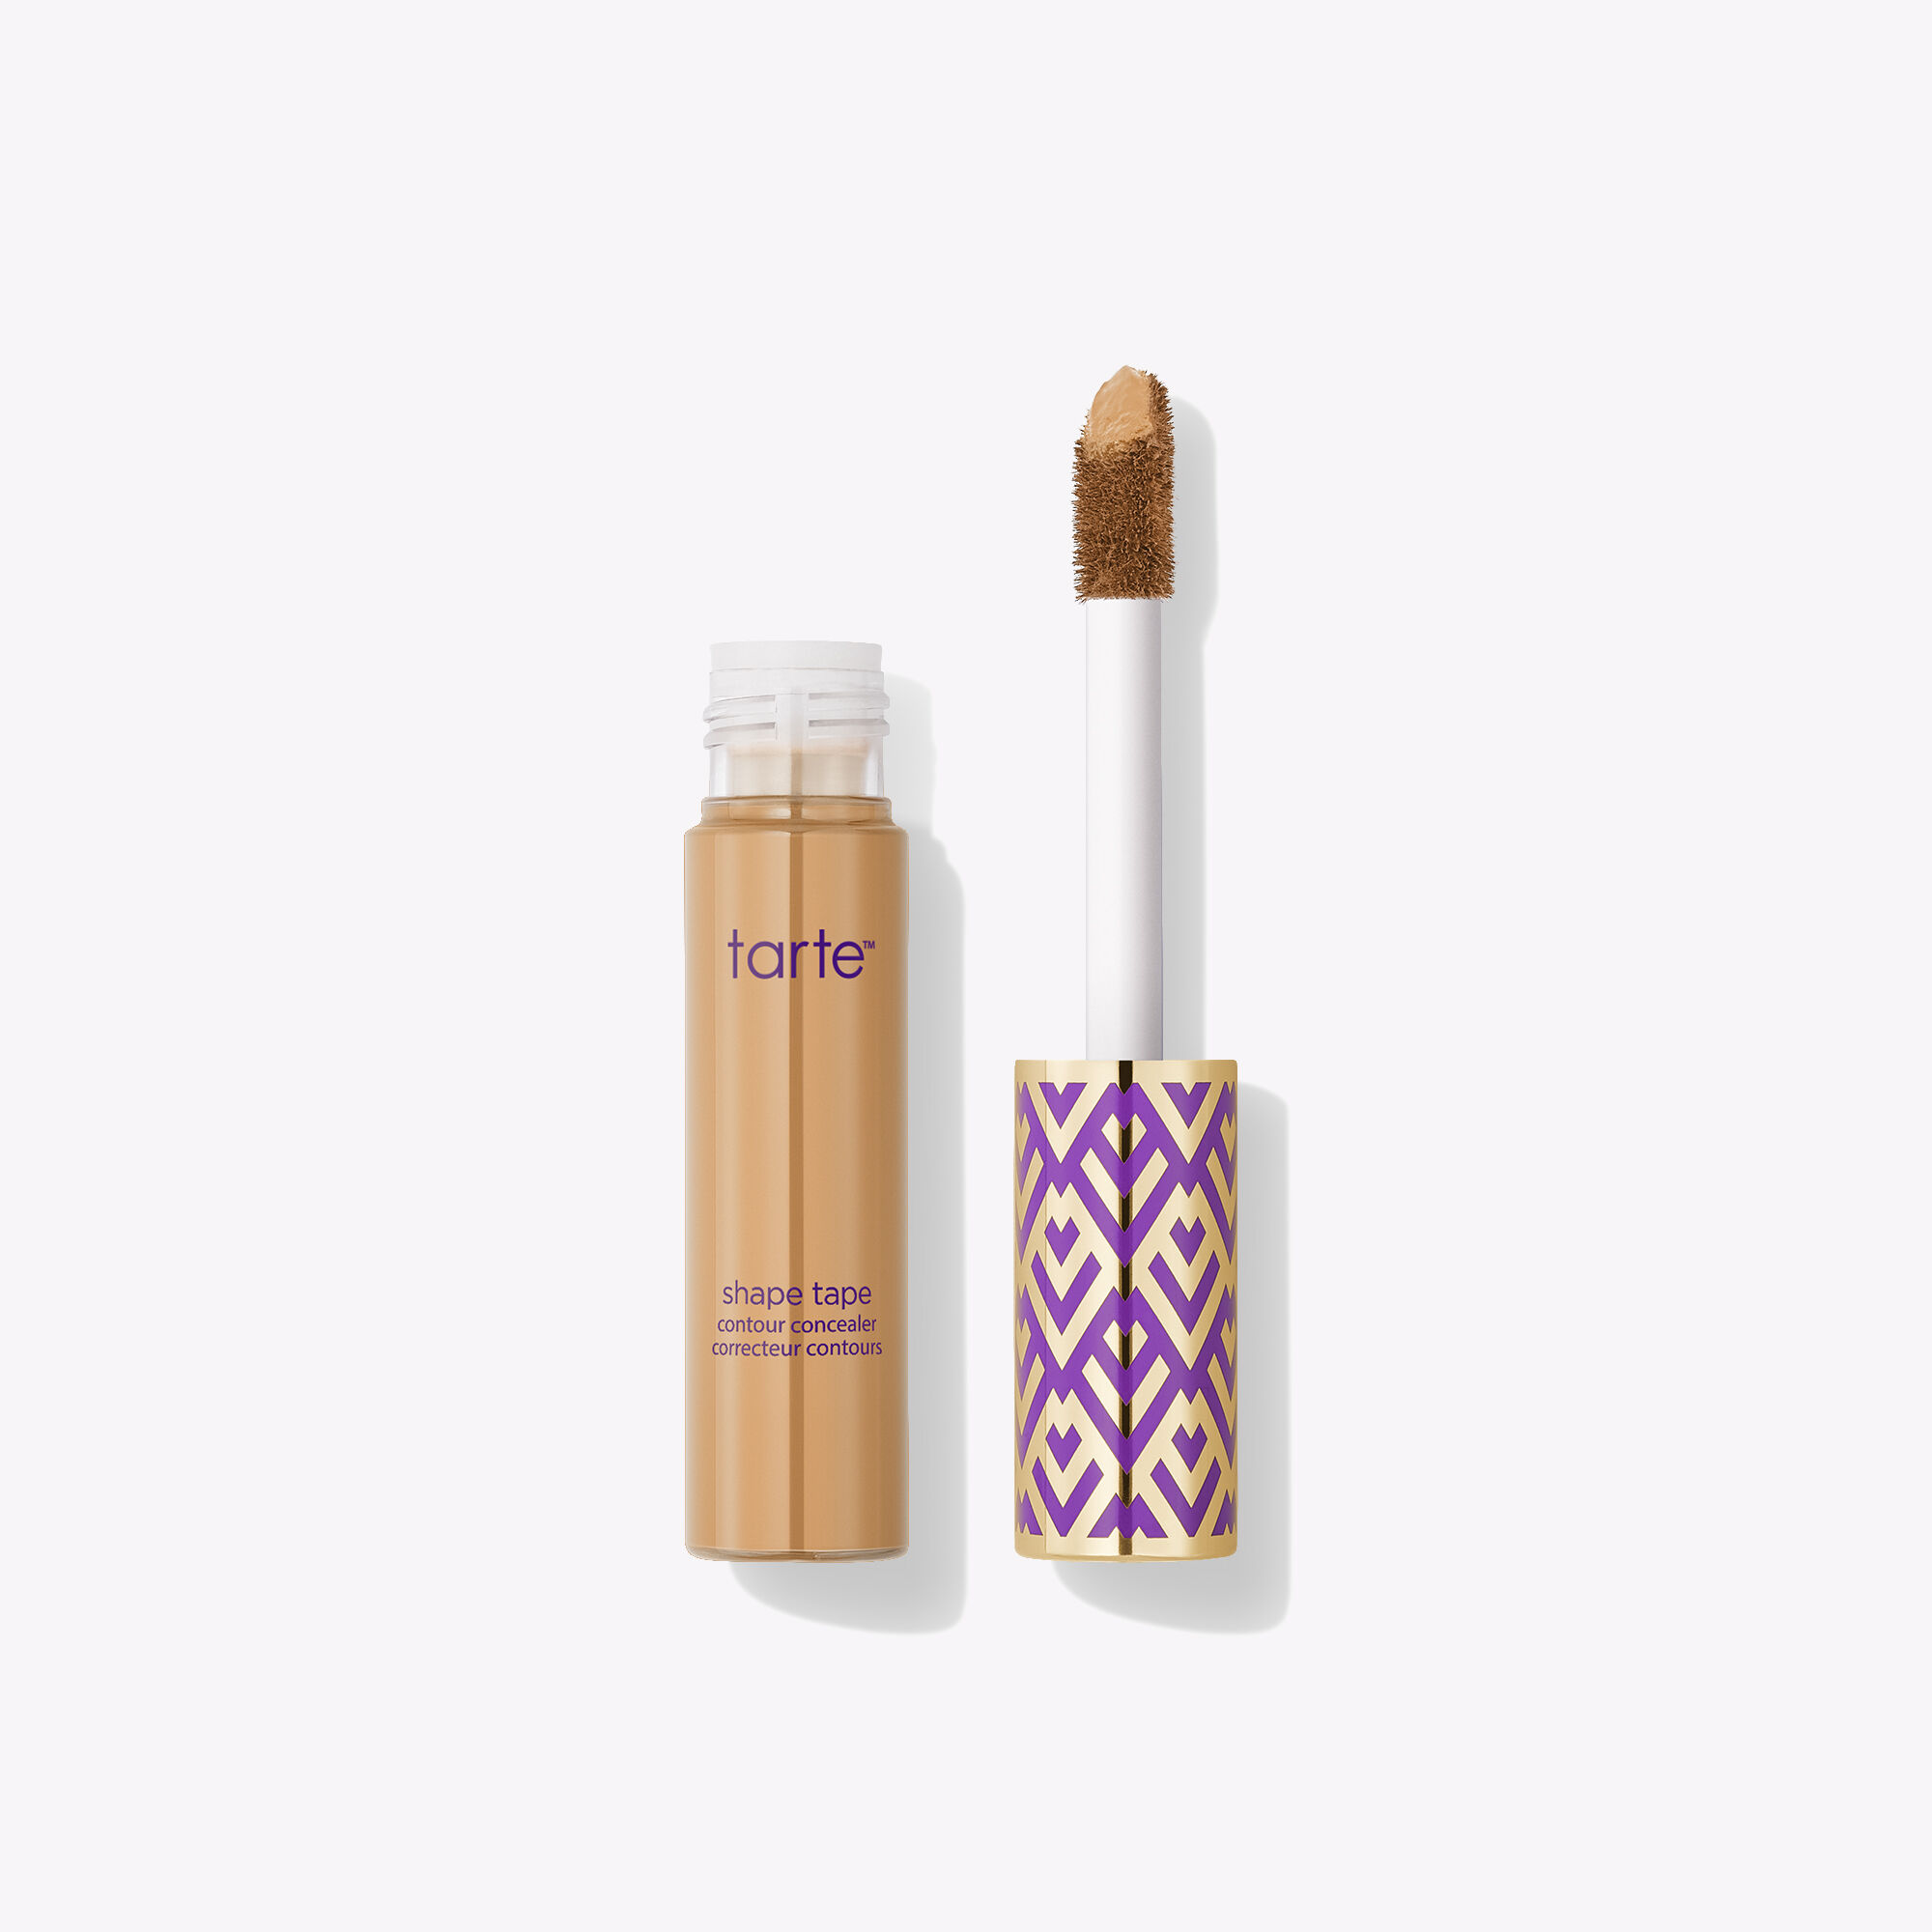 photo Tarte Cosmetics Called Out Over Lack Of Diversity